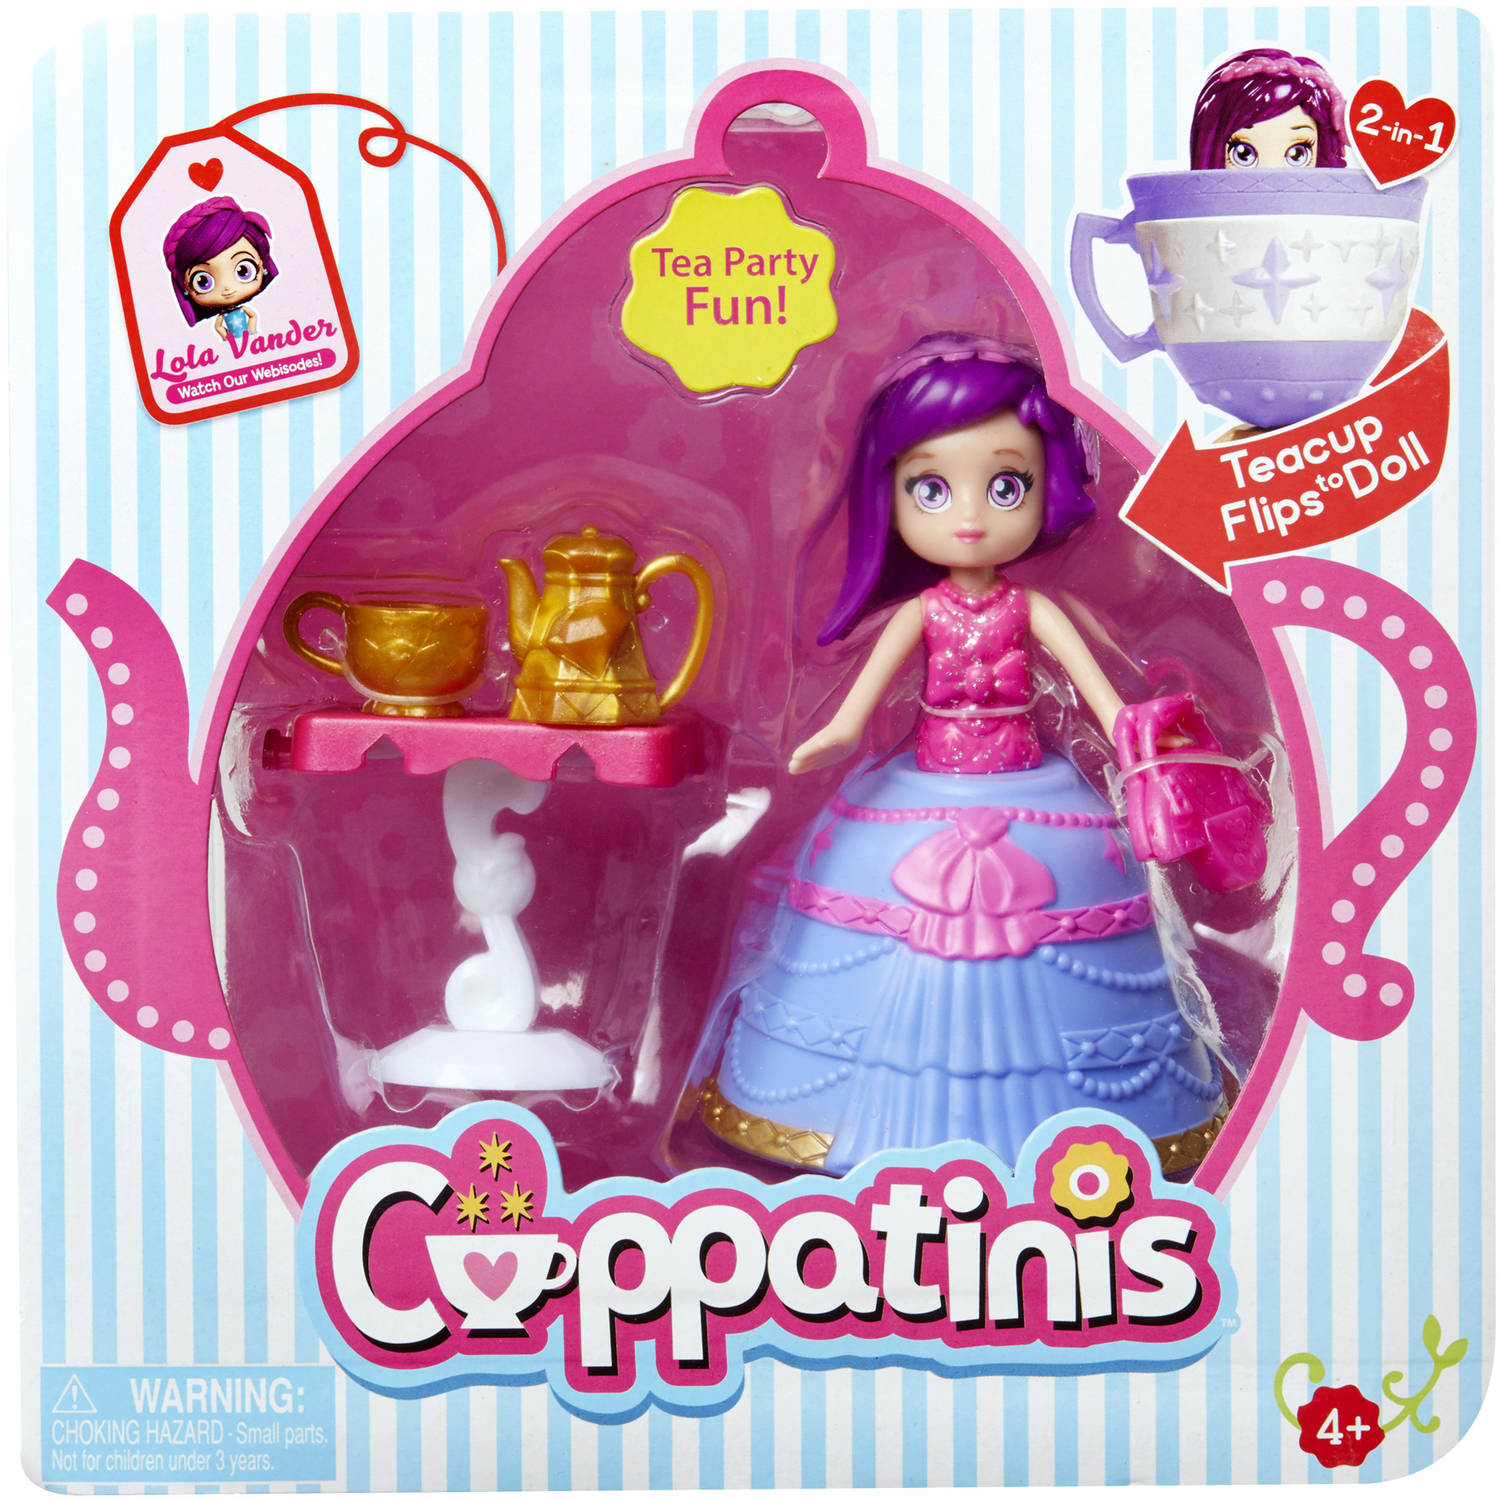 Cuppatinis Lola Vander and Accessories